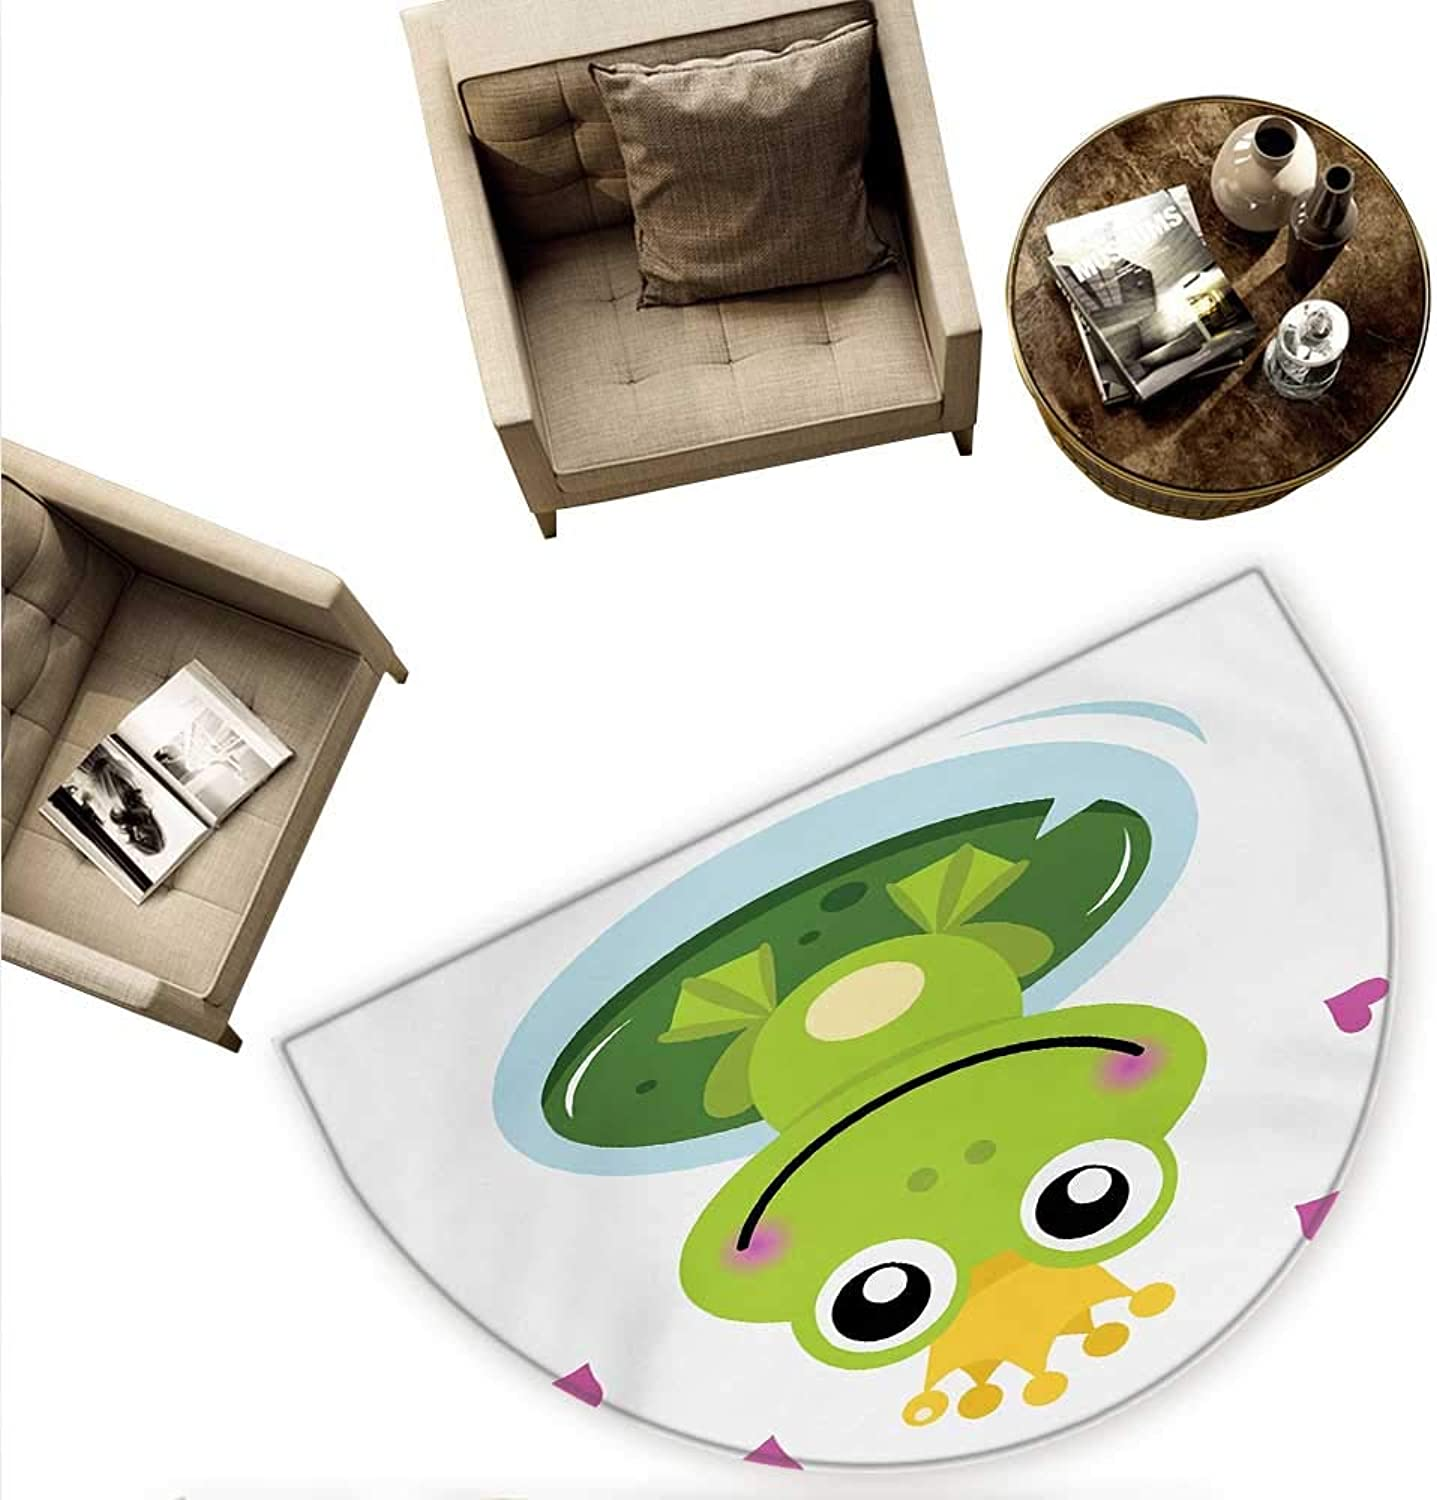 Animal Half Round Door mats Cartoon Cheerful Frog Prince with a Crown and Hearts Fairy Tale Character Doodle Bathroom Mat H 55.1  xD 82.6  Multicolor